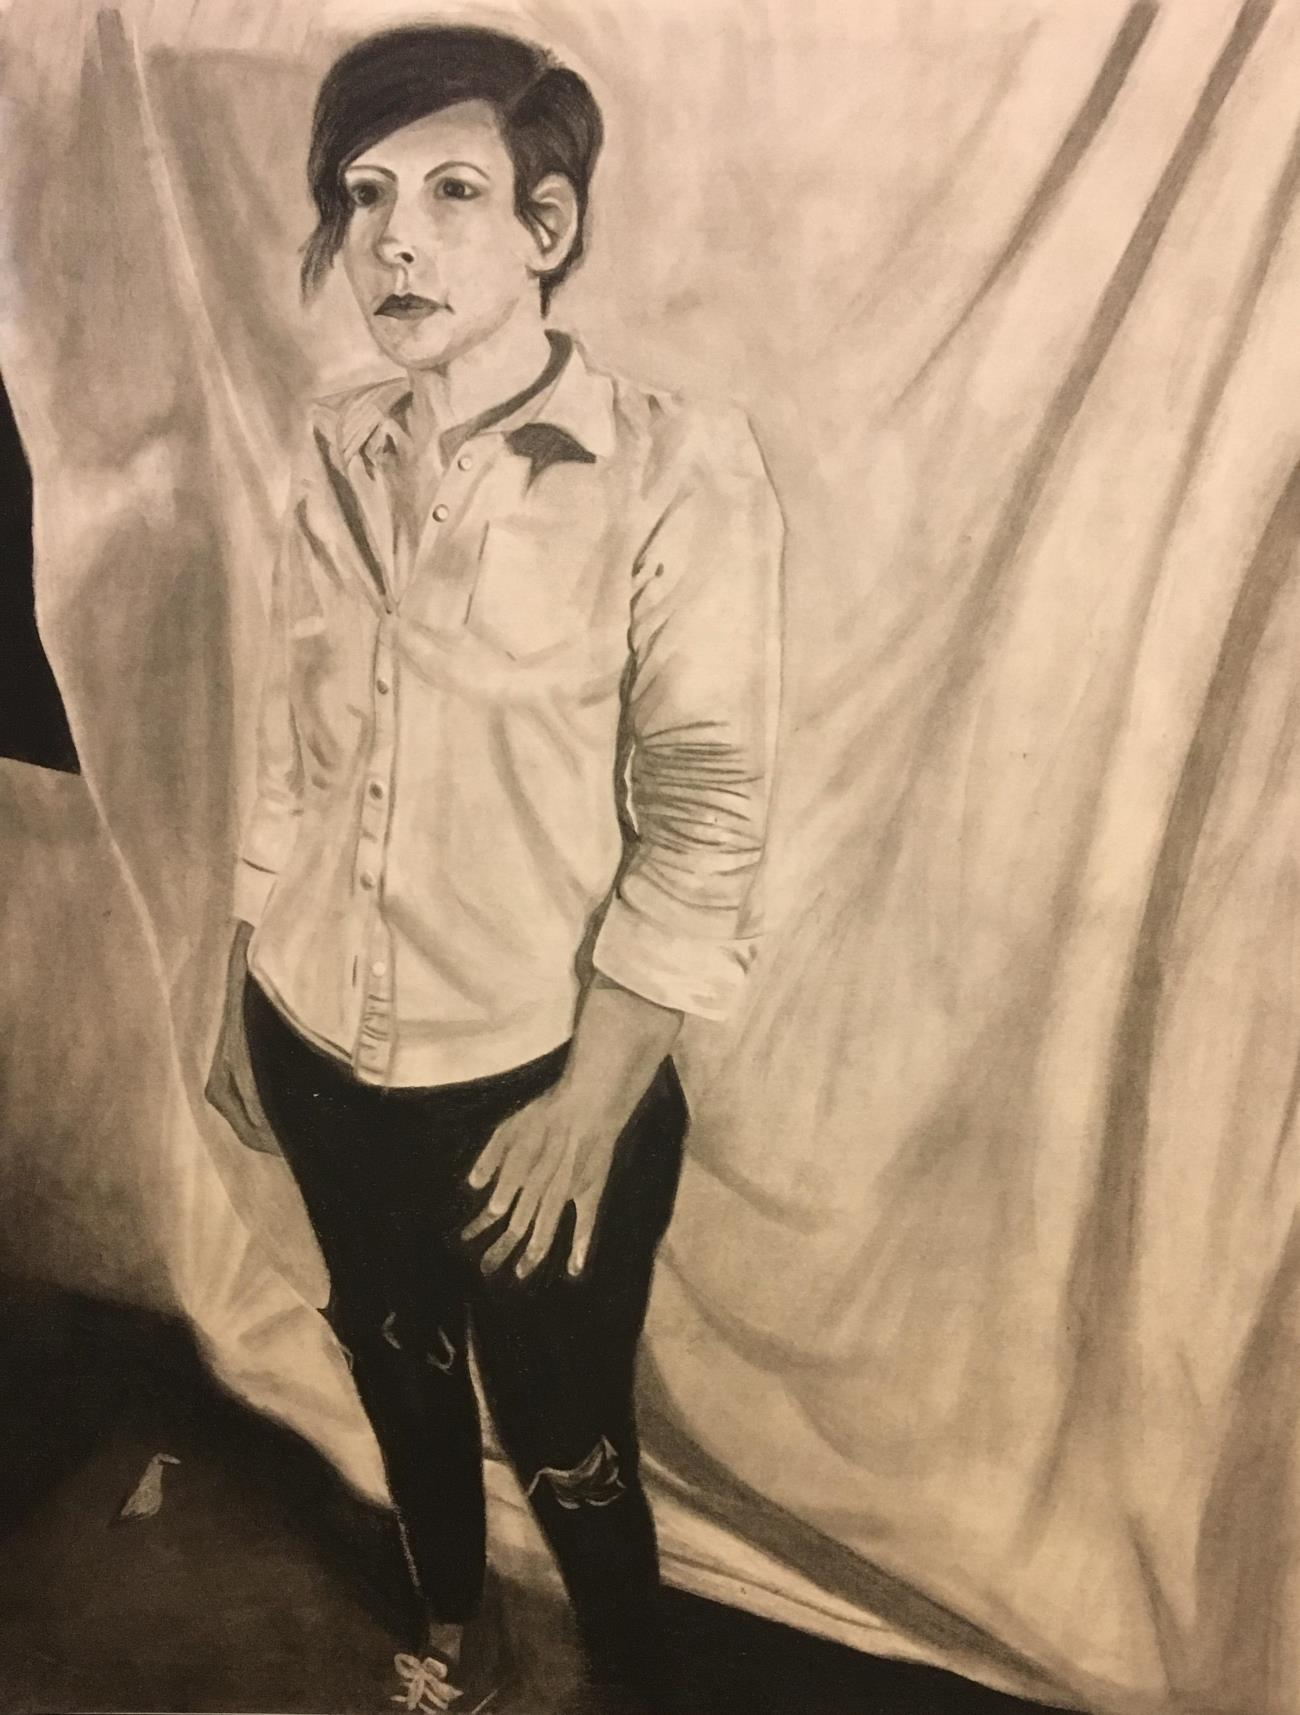 Stacy Fisher Drawing 1